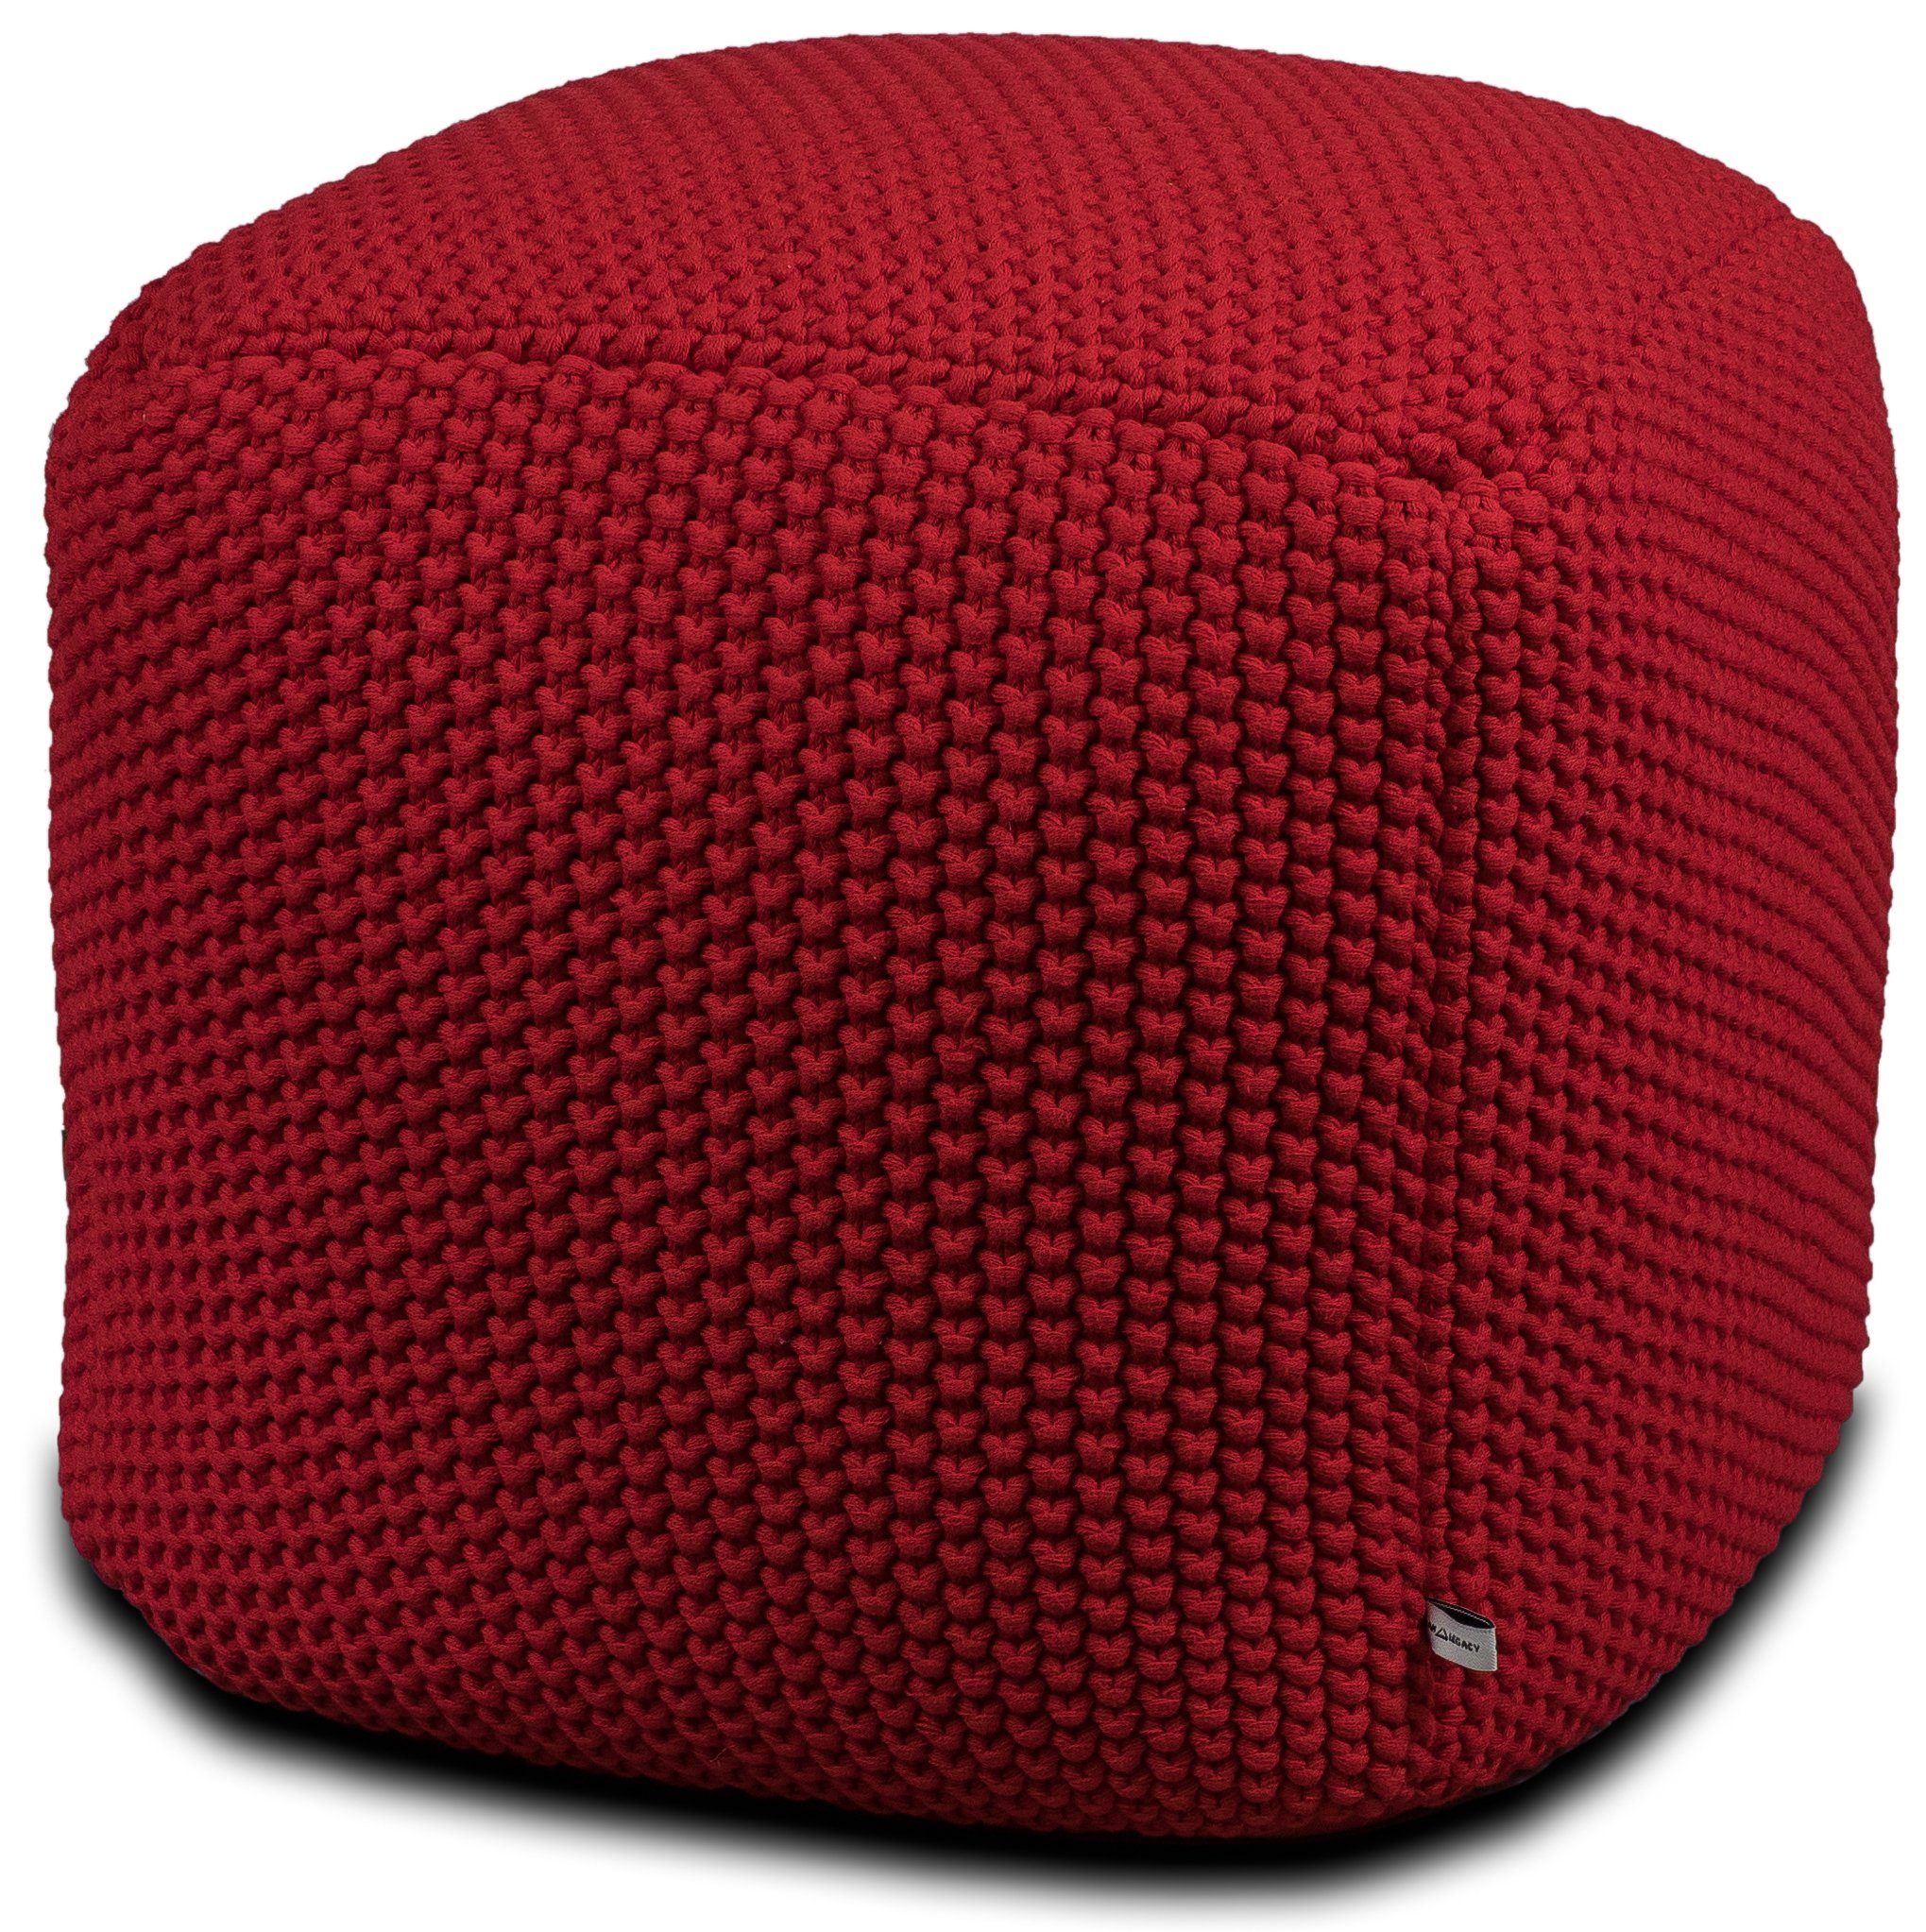 Urban Legacy Crocheted/Knitted Ottoman Pouf (100% Cotton, Handmade, Square, Beautiful, Soft and Lightweight, Available in Four Colors) | by (Red)